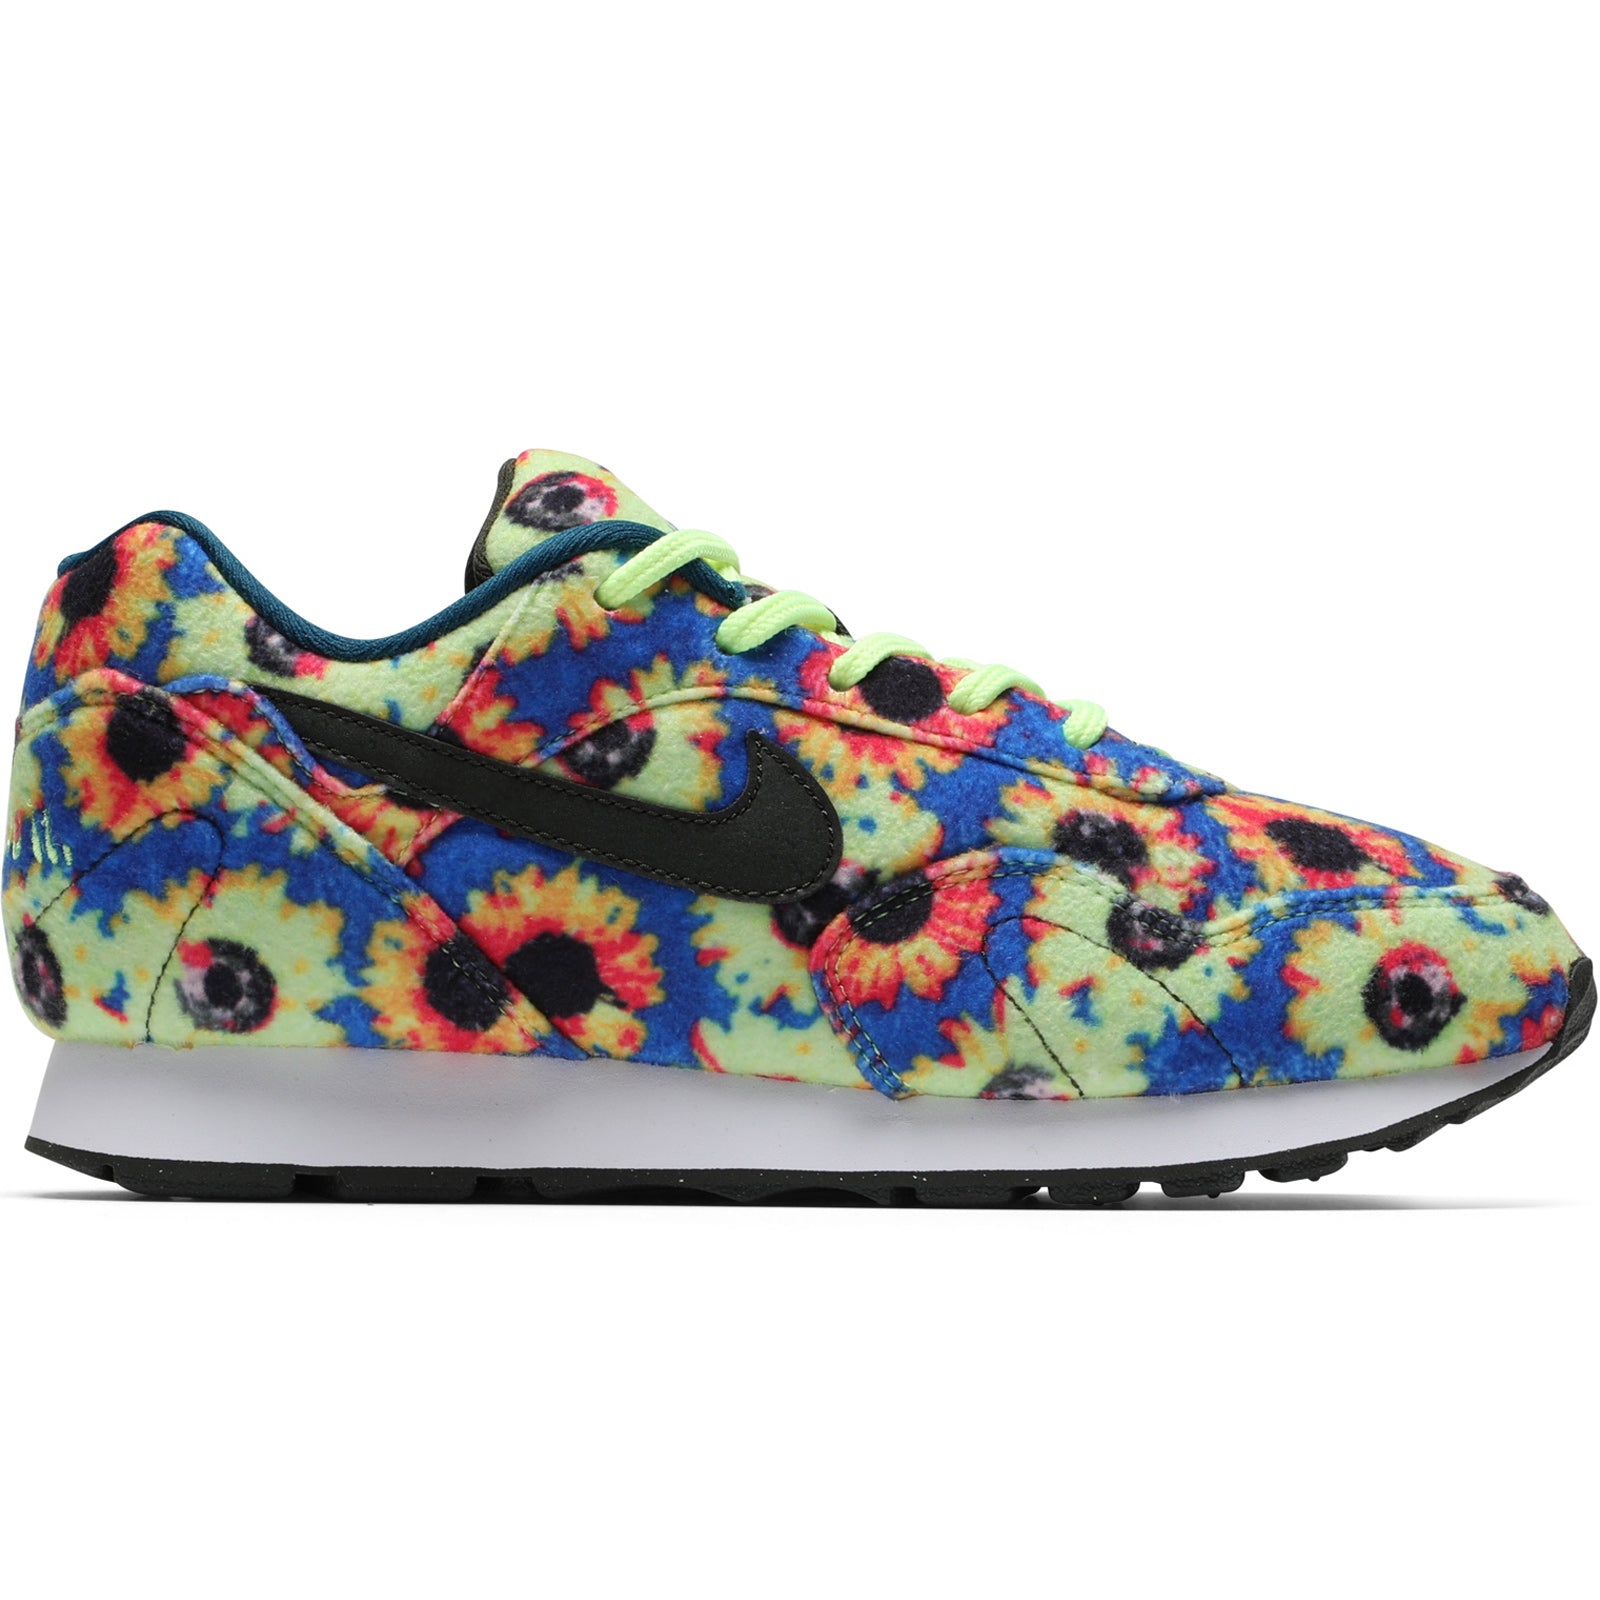 reputable site f782c 9550d ... in the back of your head somewhere, as the sleek wedge silhouette is  outfitted in an all-over floral print with a bright blue backdrop. . Nike  Outburst ...